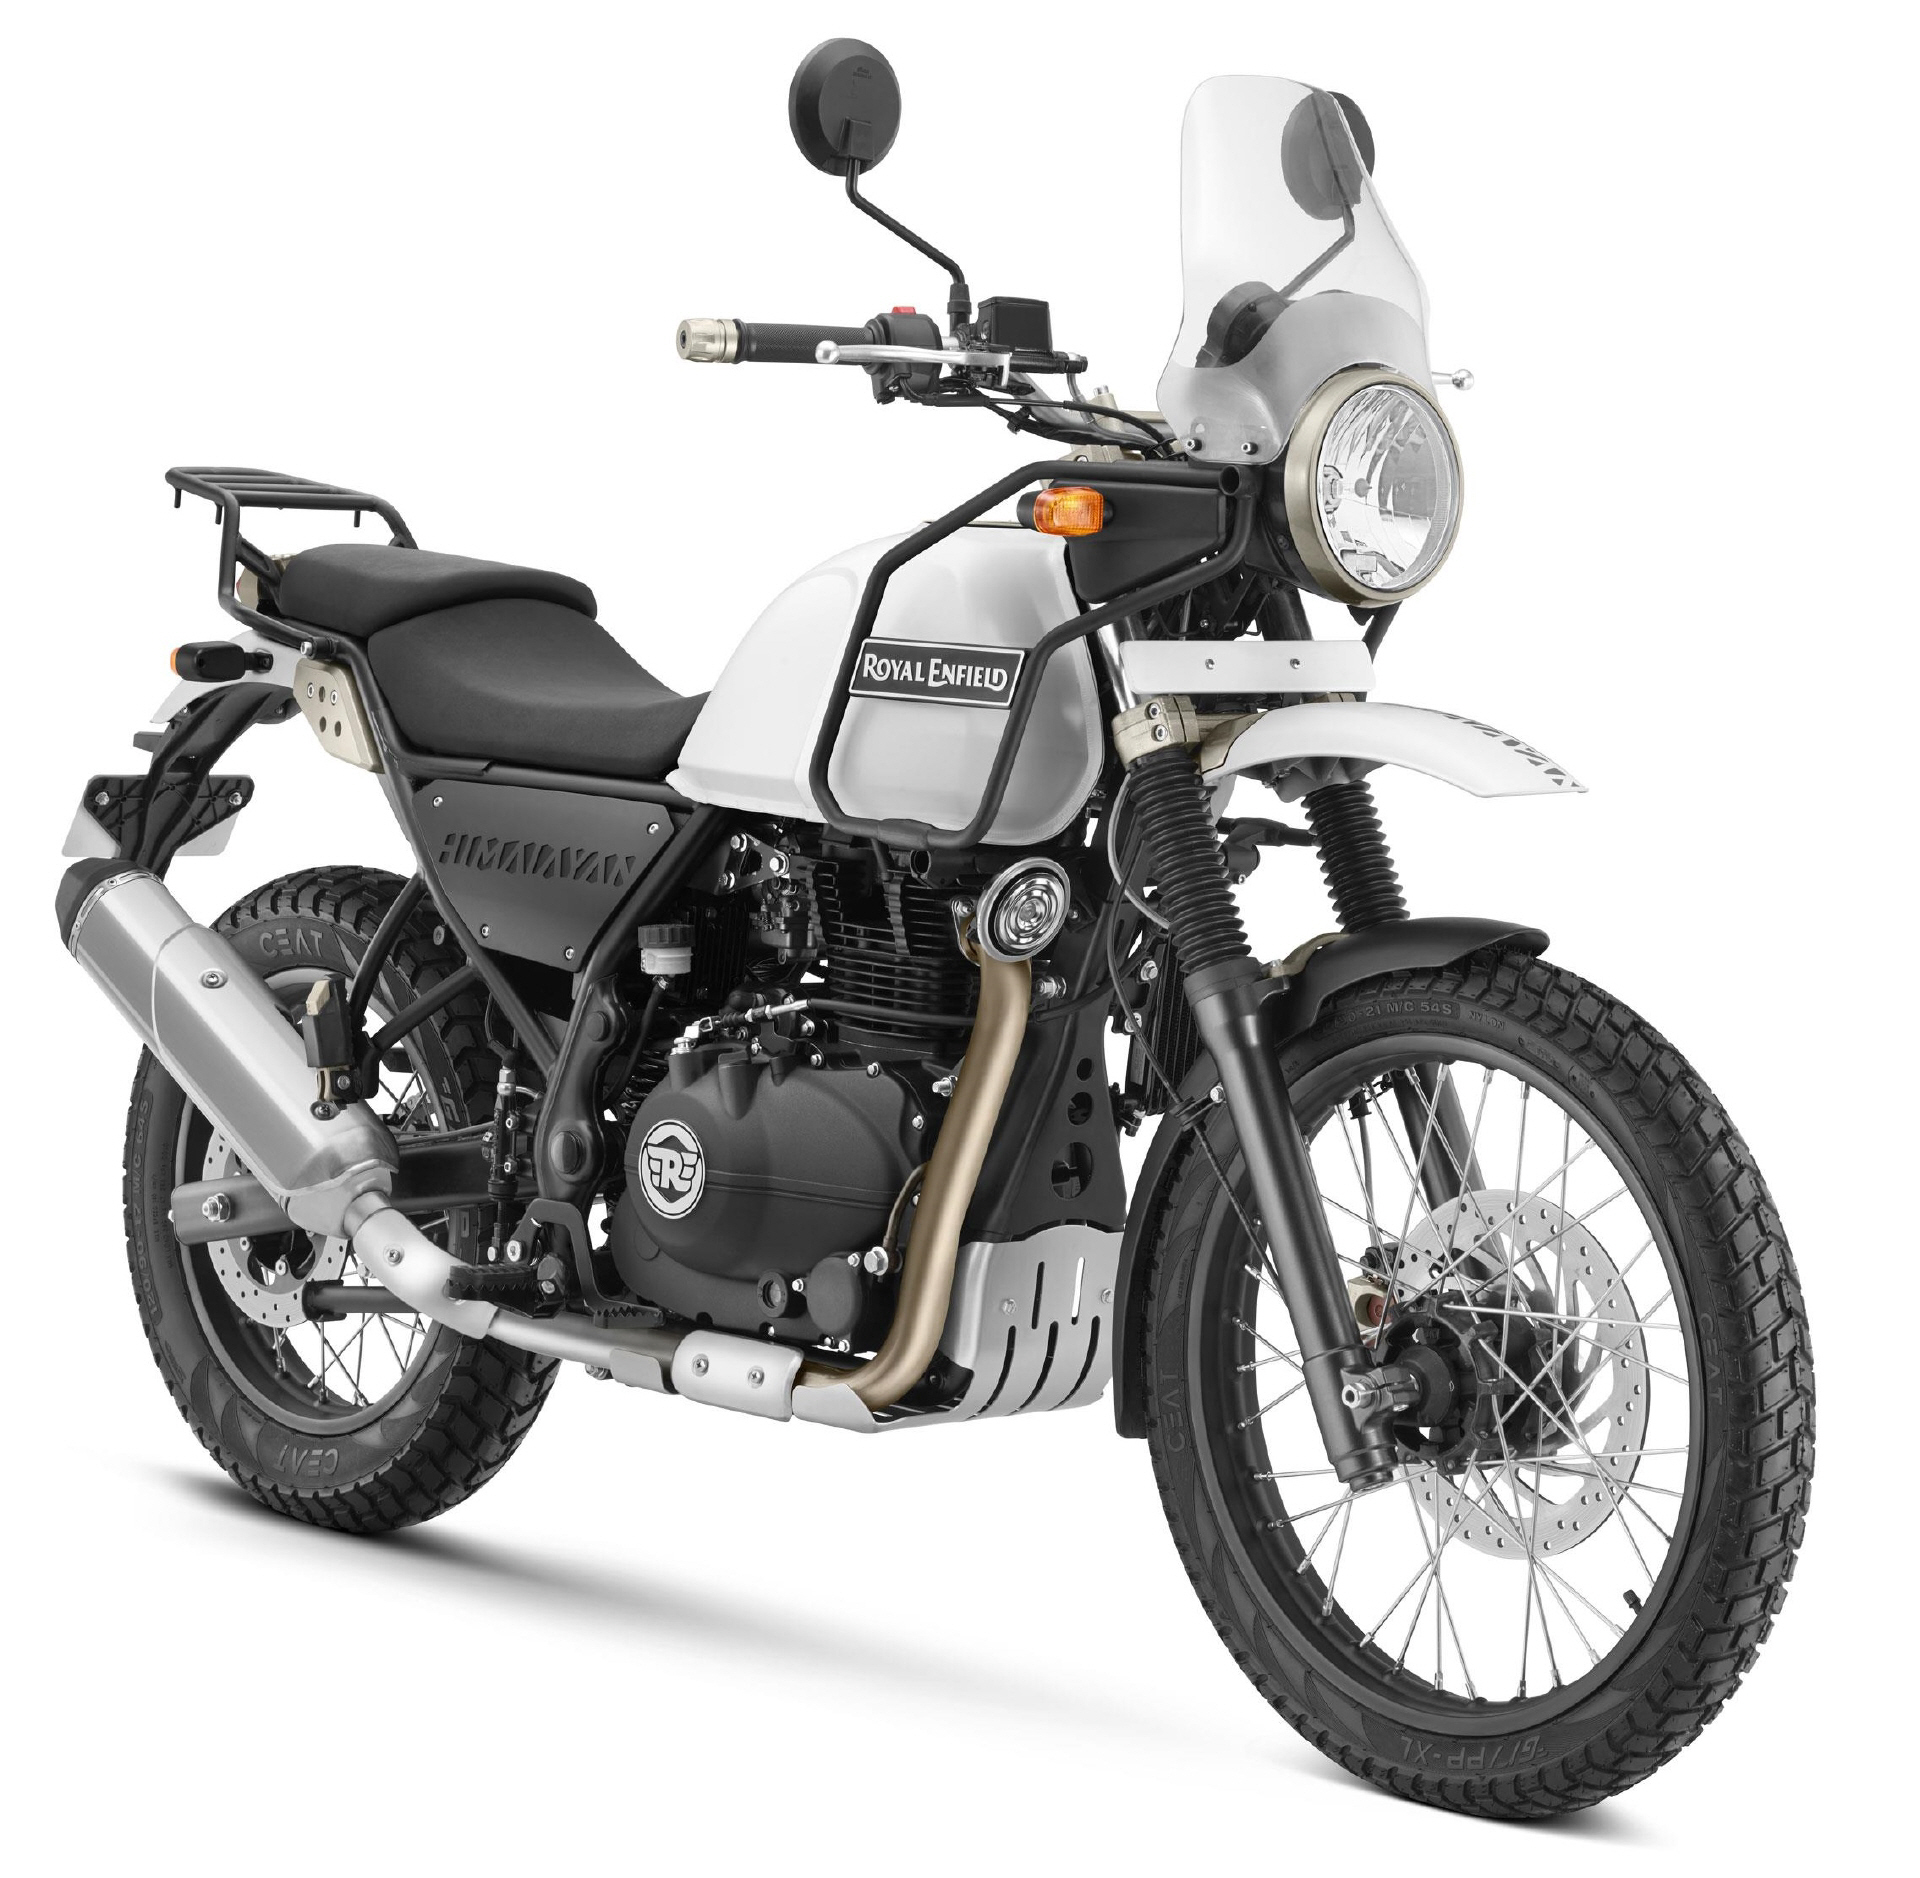 royalenfield_himalayan_08jpg